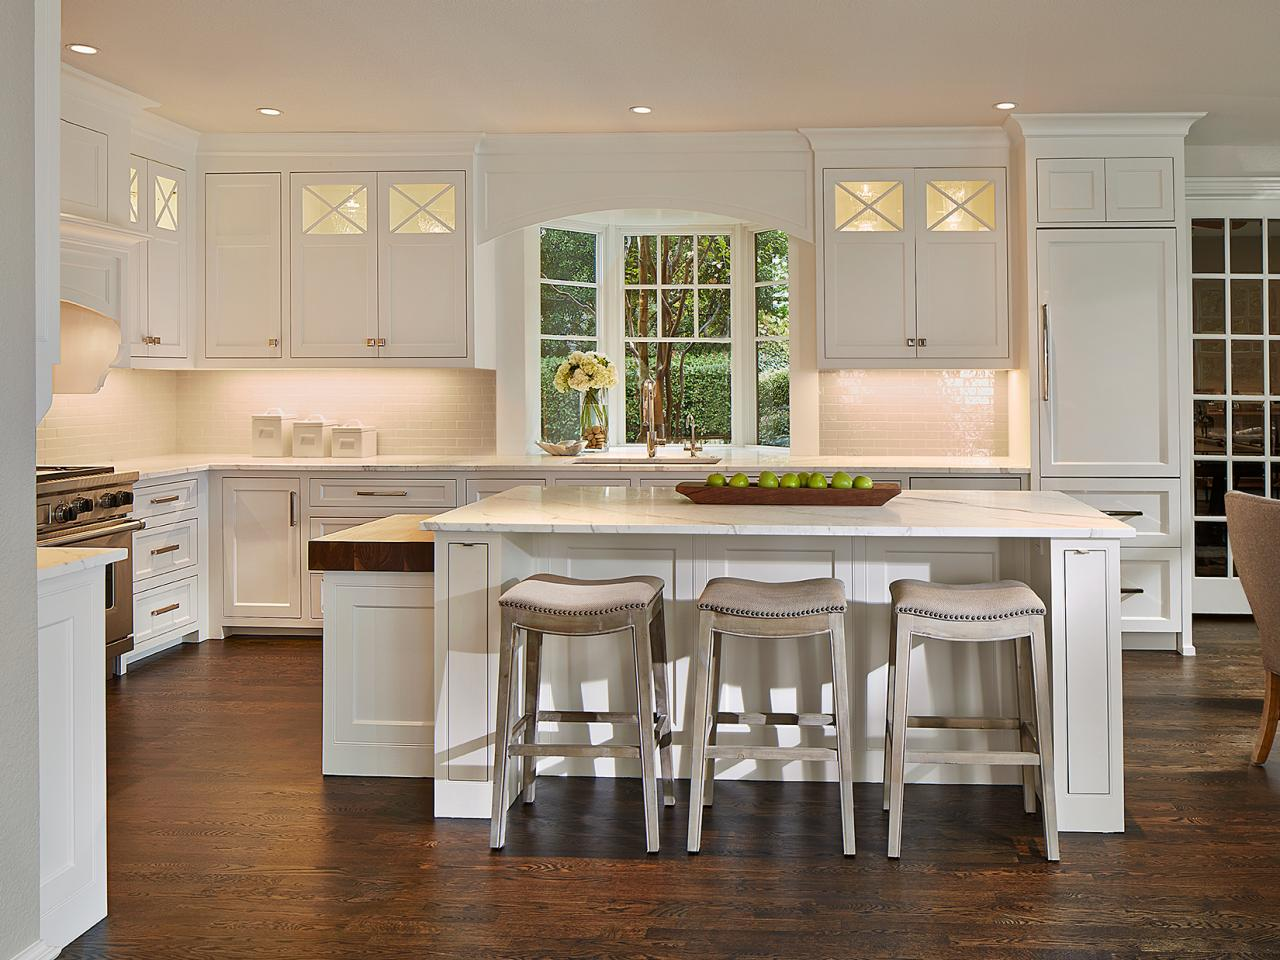 modern eat in kitchen with gray stools at island hgtv. Black Bedroom Furniture Sets. Home Design Ideas